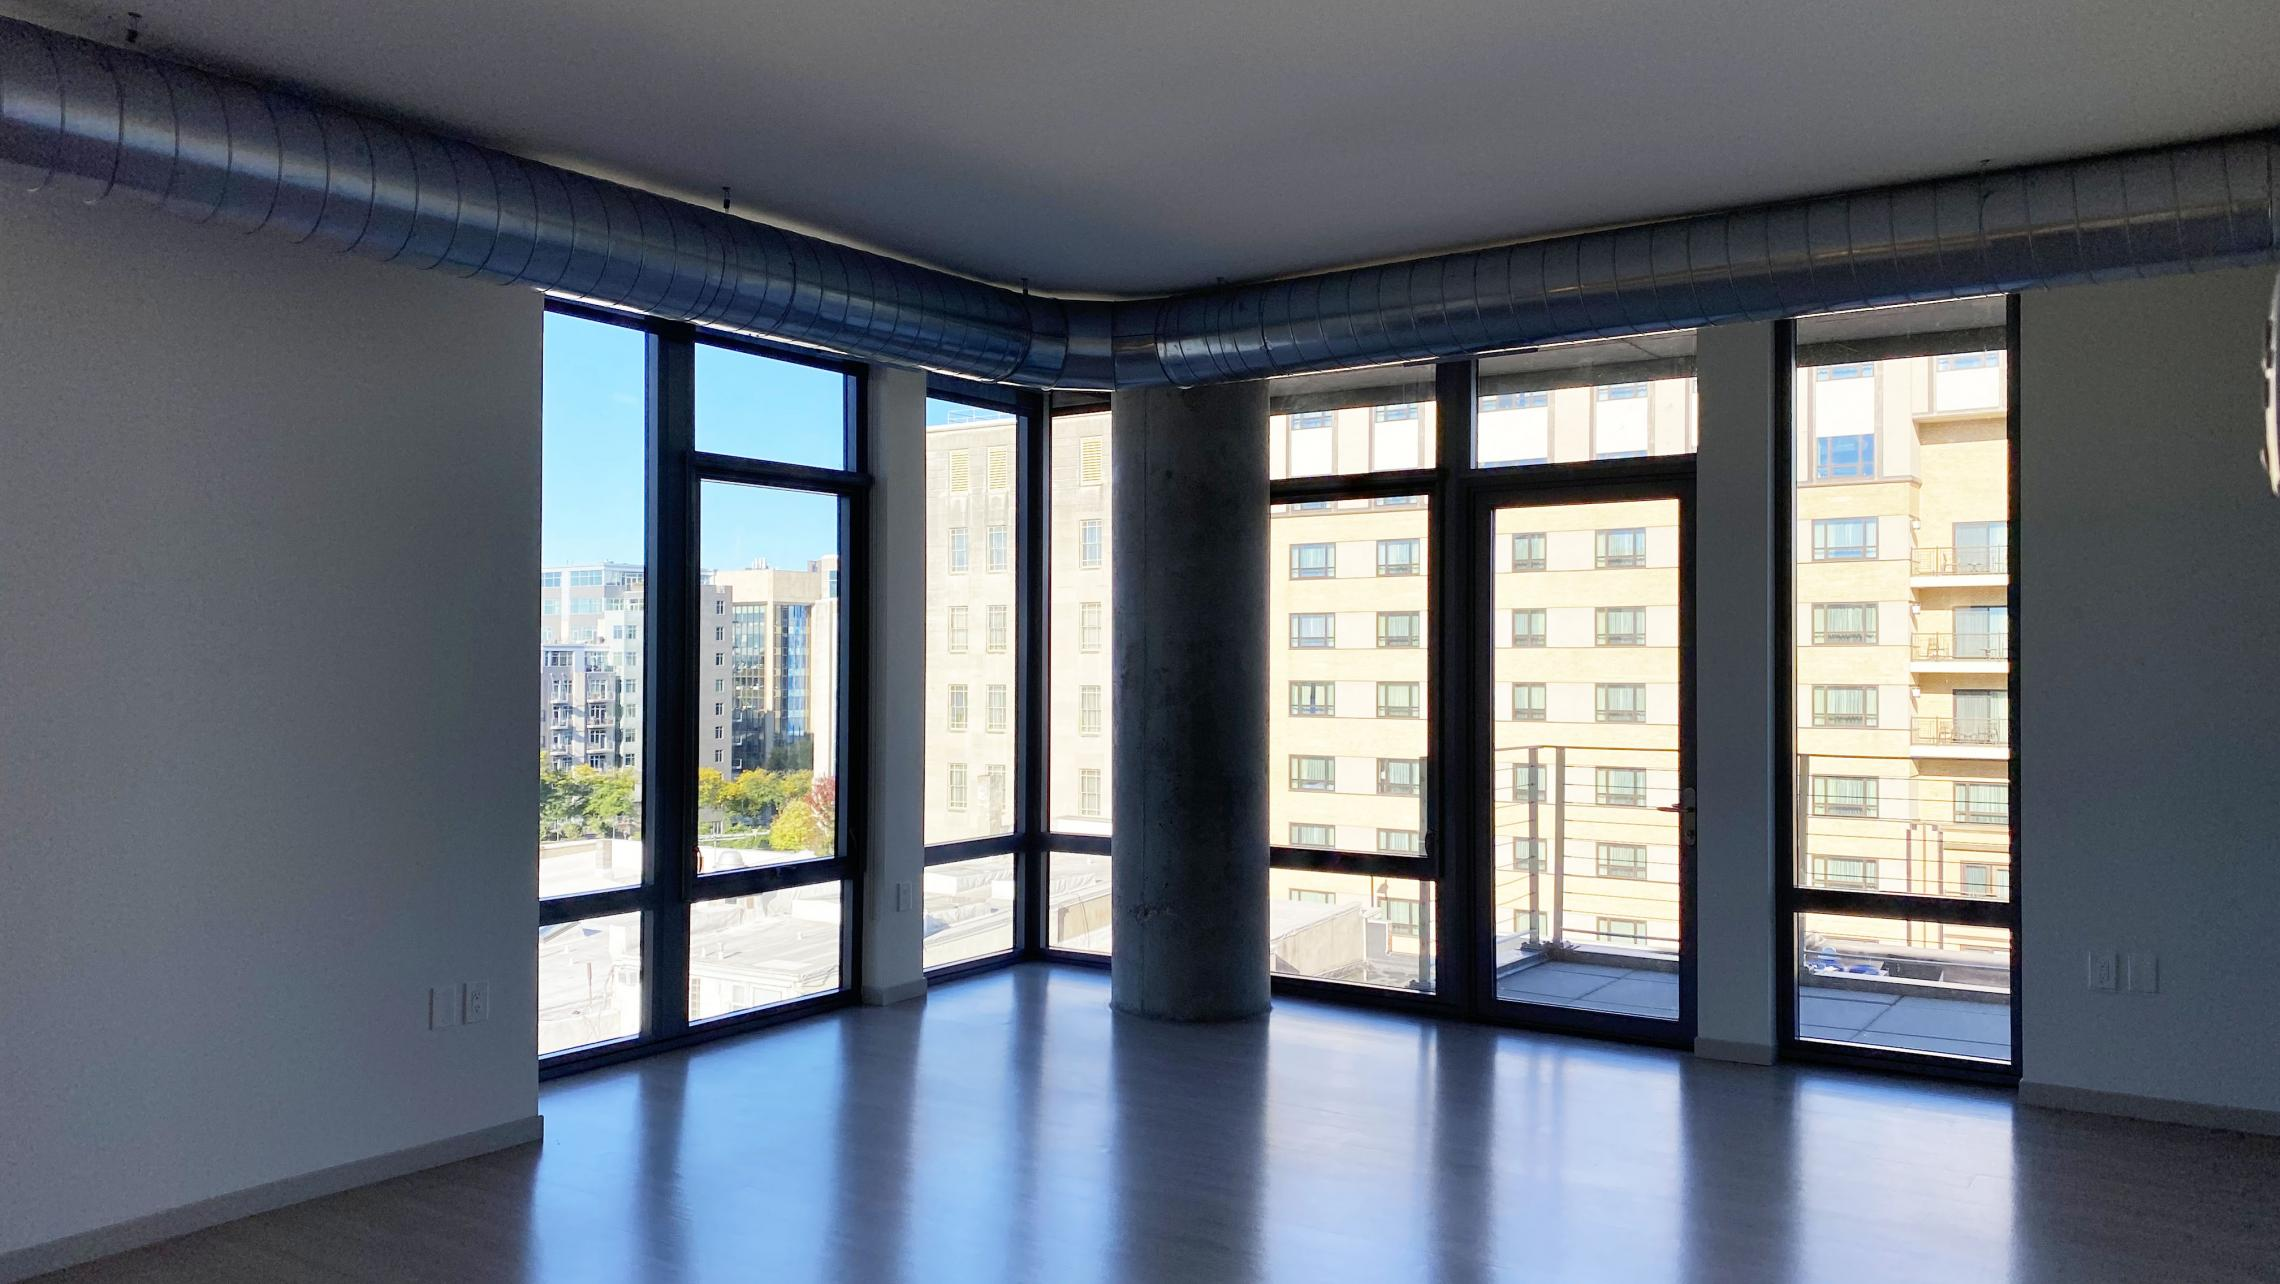 The-Pressman-Apartment-602-Two-Bedroom-Two-Bath-Kitchen-Living-Upscale-Luxurious-Modern-Exposed-Duct-Concrete-Capitol-Square-Downtown-Views-Madison-Balcony-Terrace-Pets-Fitness-Lounge-Grill-Lifestyle